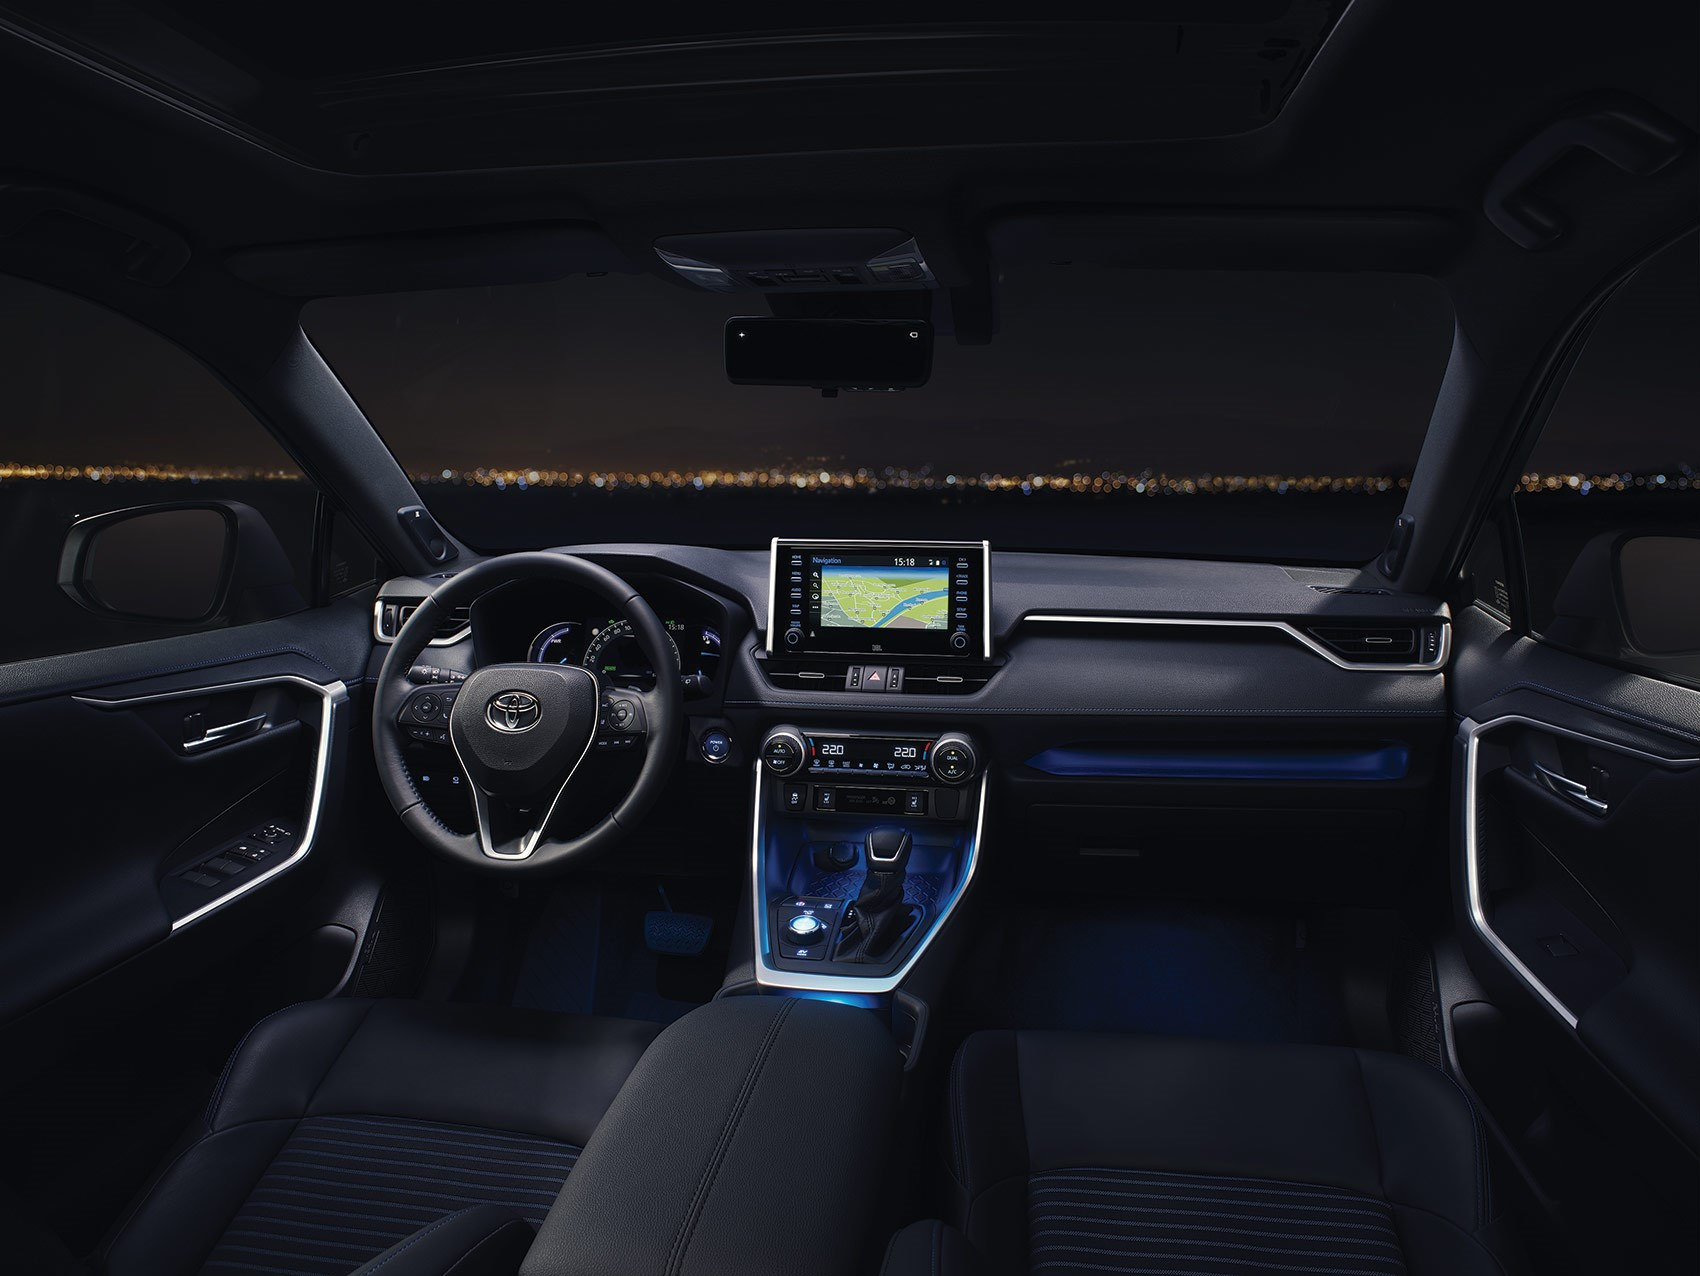 New Toyota Rav4 Plug In Hybrid Mixes Hot Hatch Pace With Prius